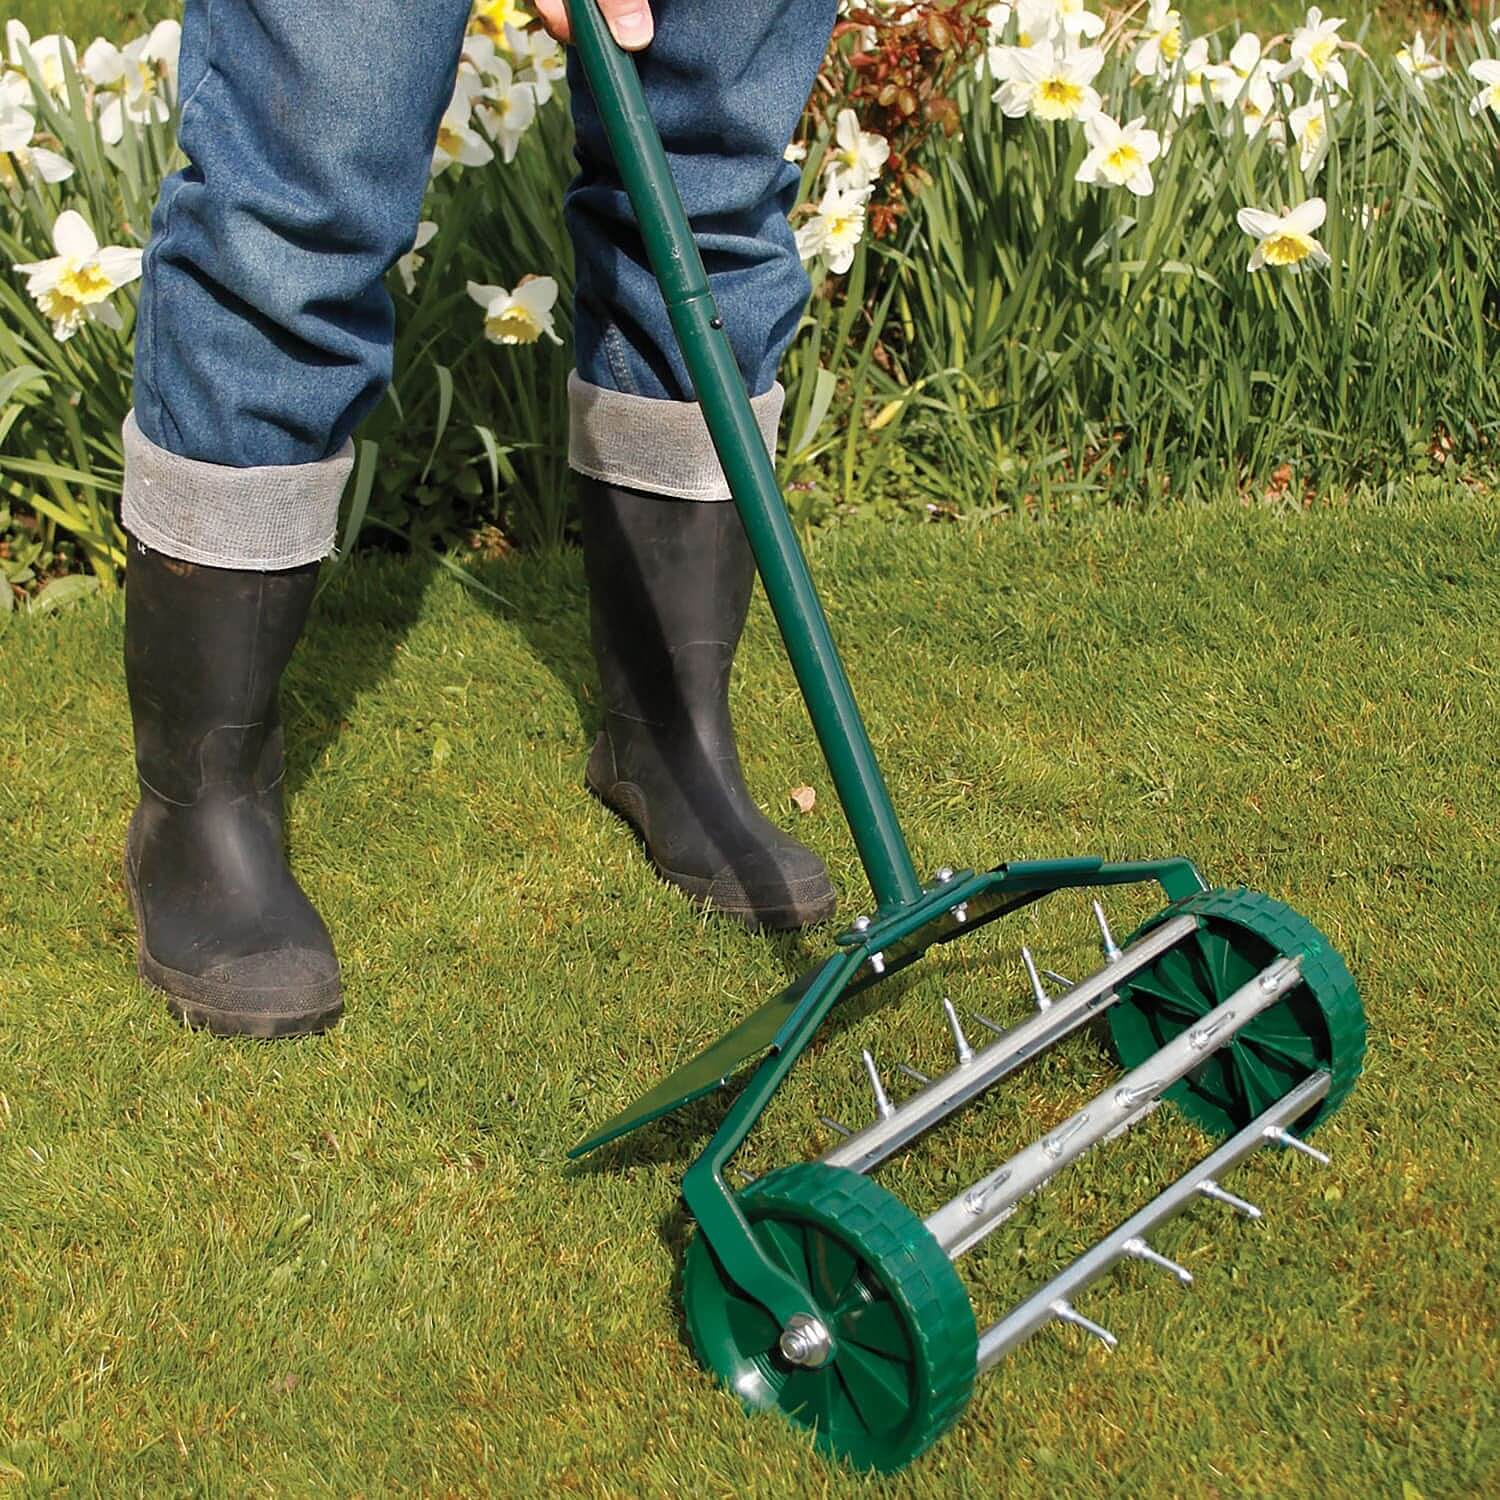 Coopers of Stortford Lawn Aerator from Coopers of Stortford